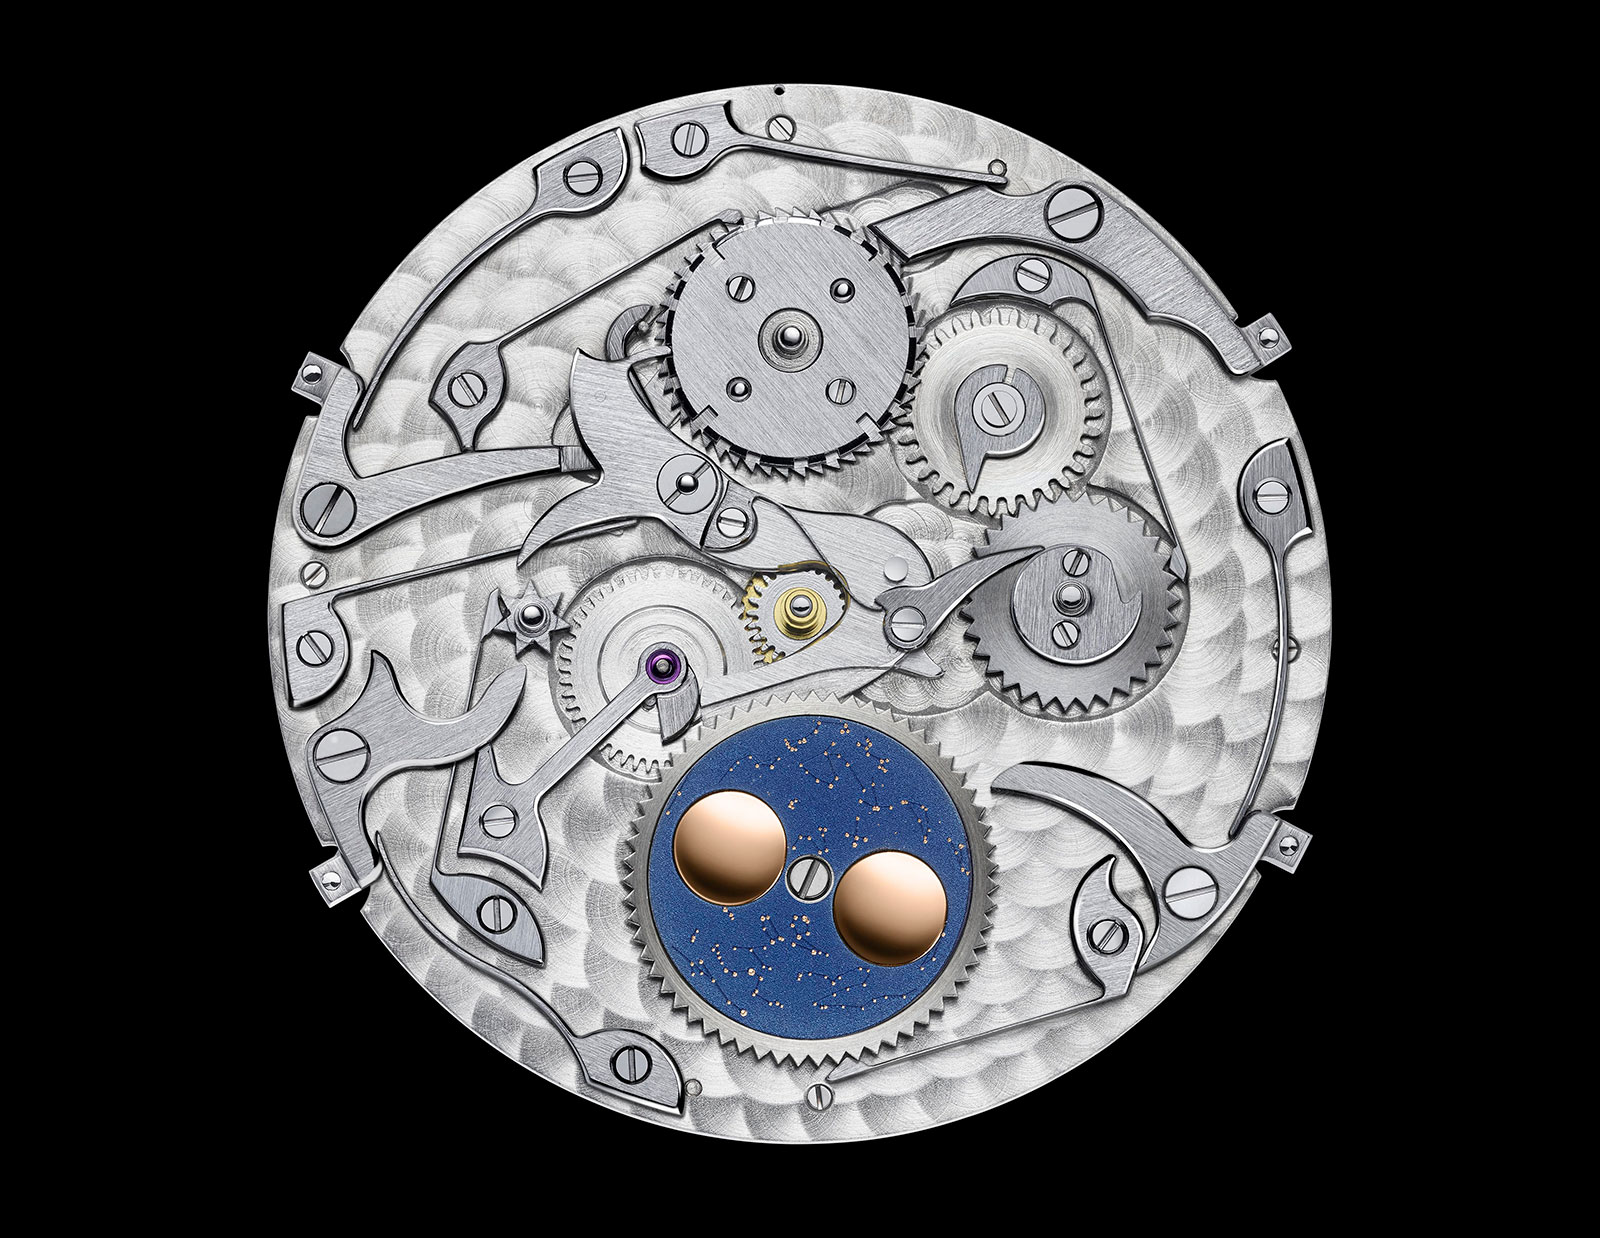 Vacheron Constantin perpetual 1120QP movement